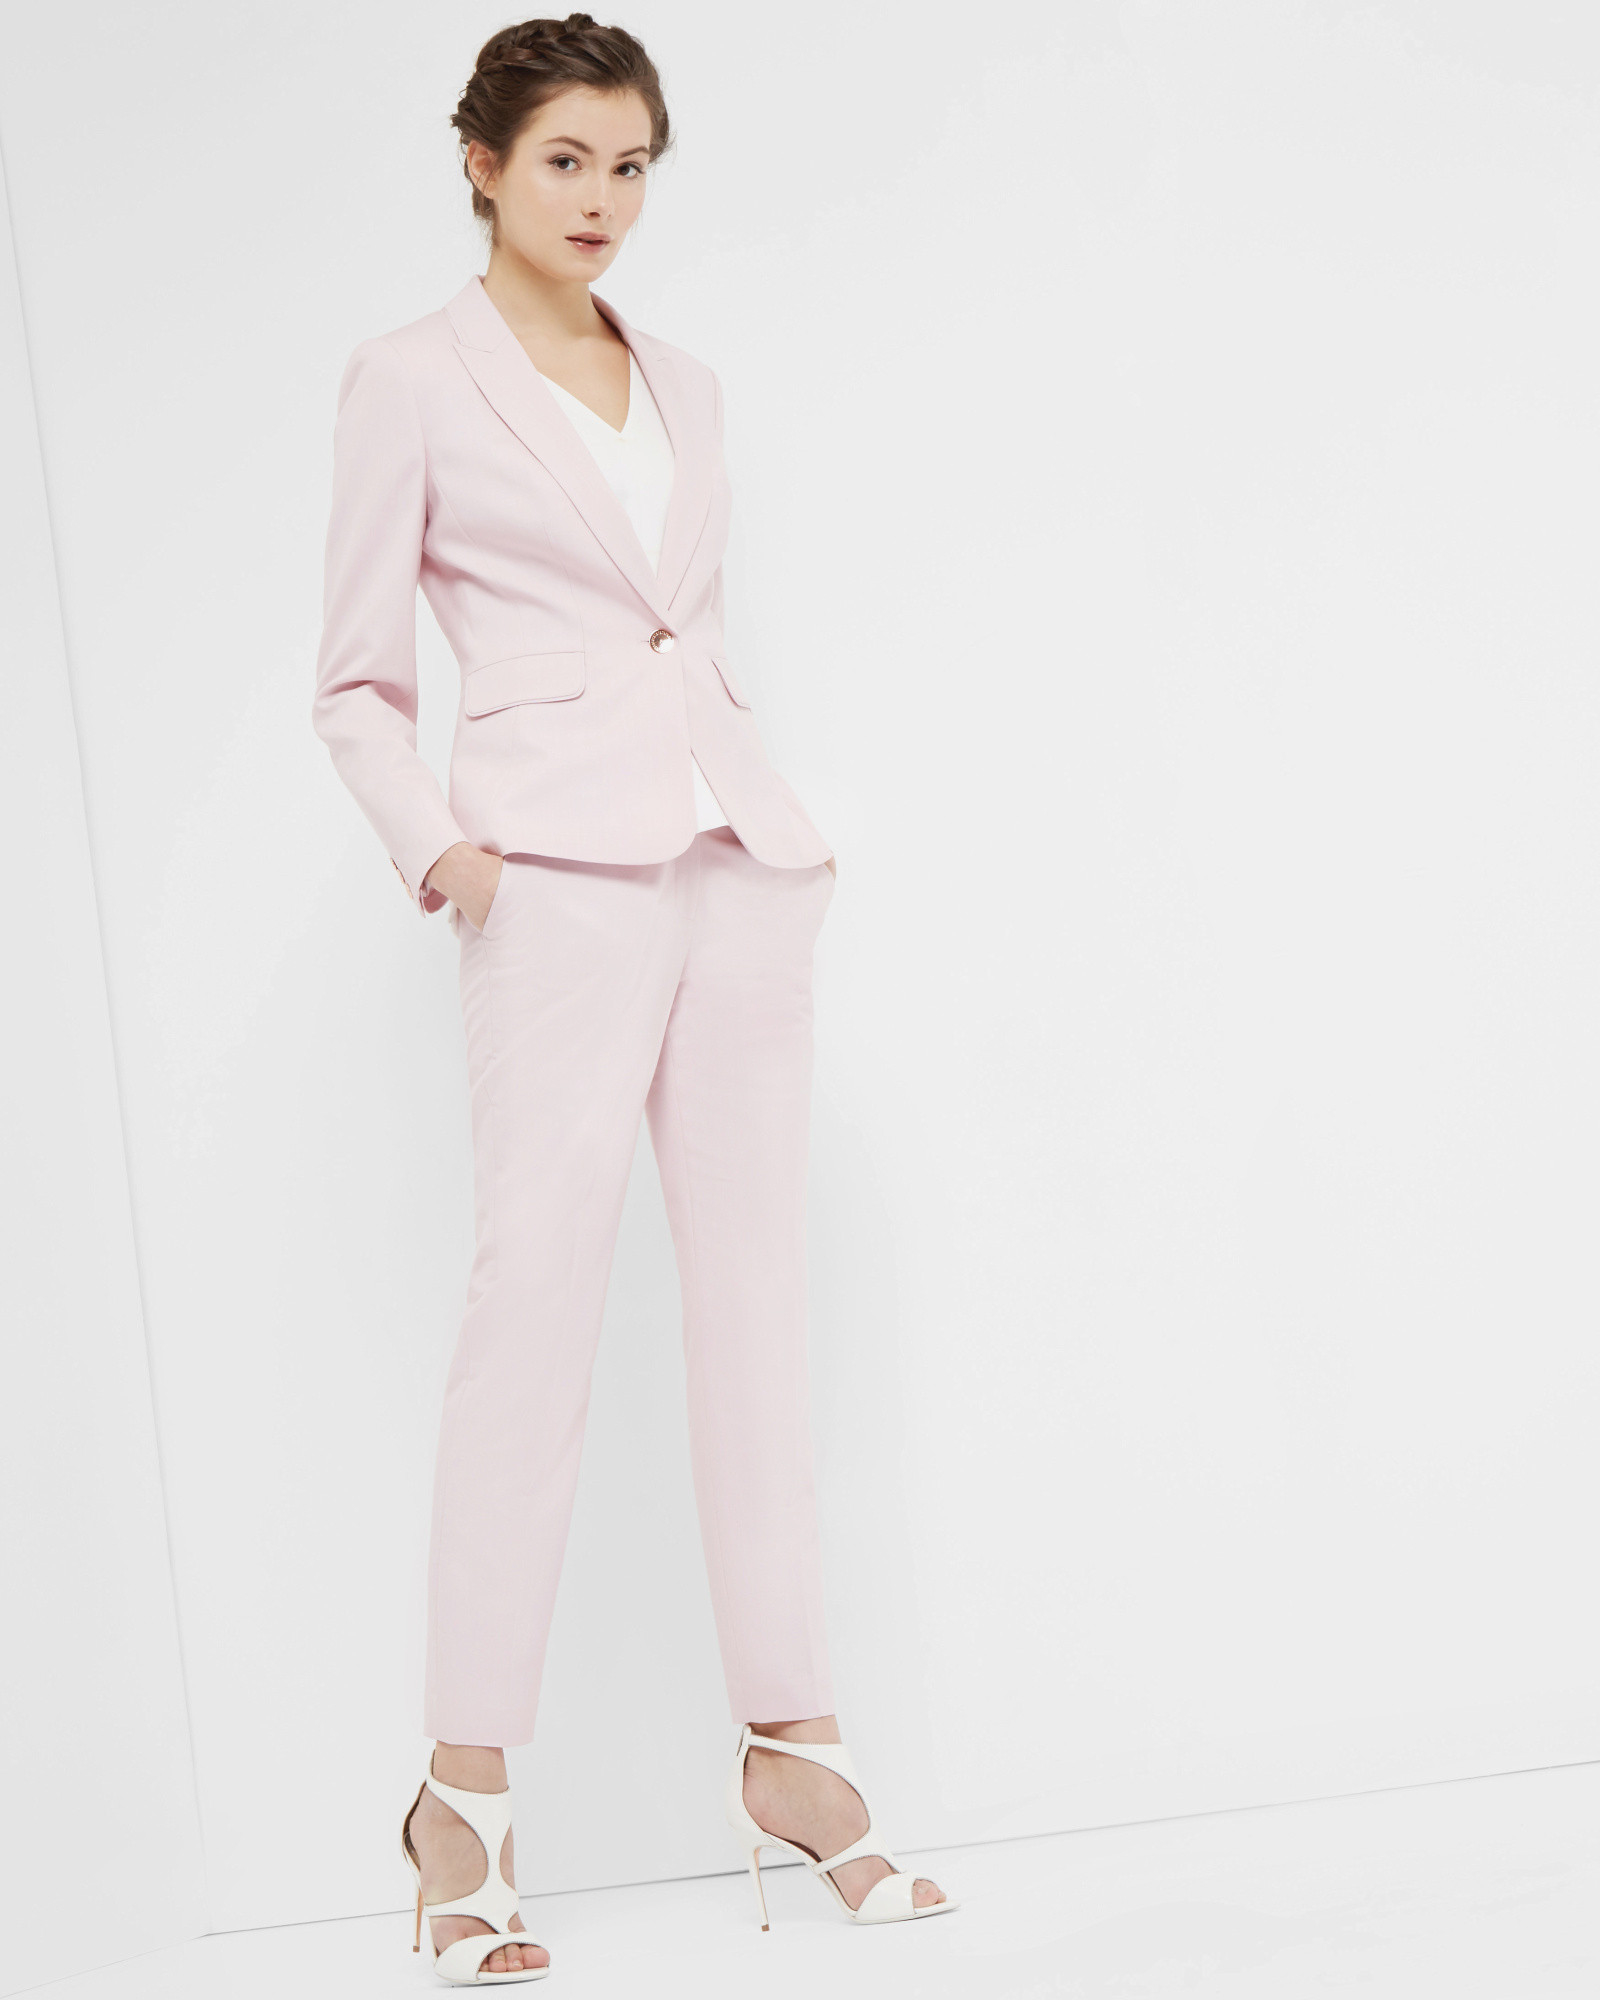 79e1e2ca1 Lyst - Ted Baker Pastel Tailored Jacket in Pink